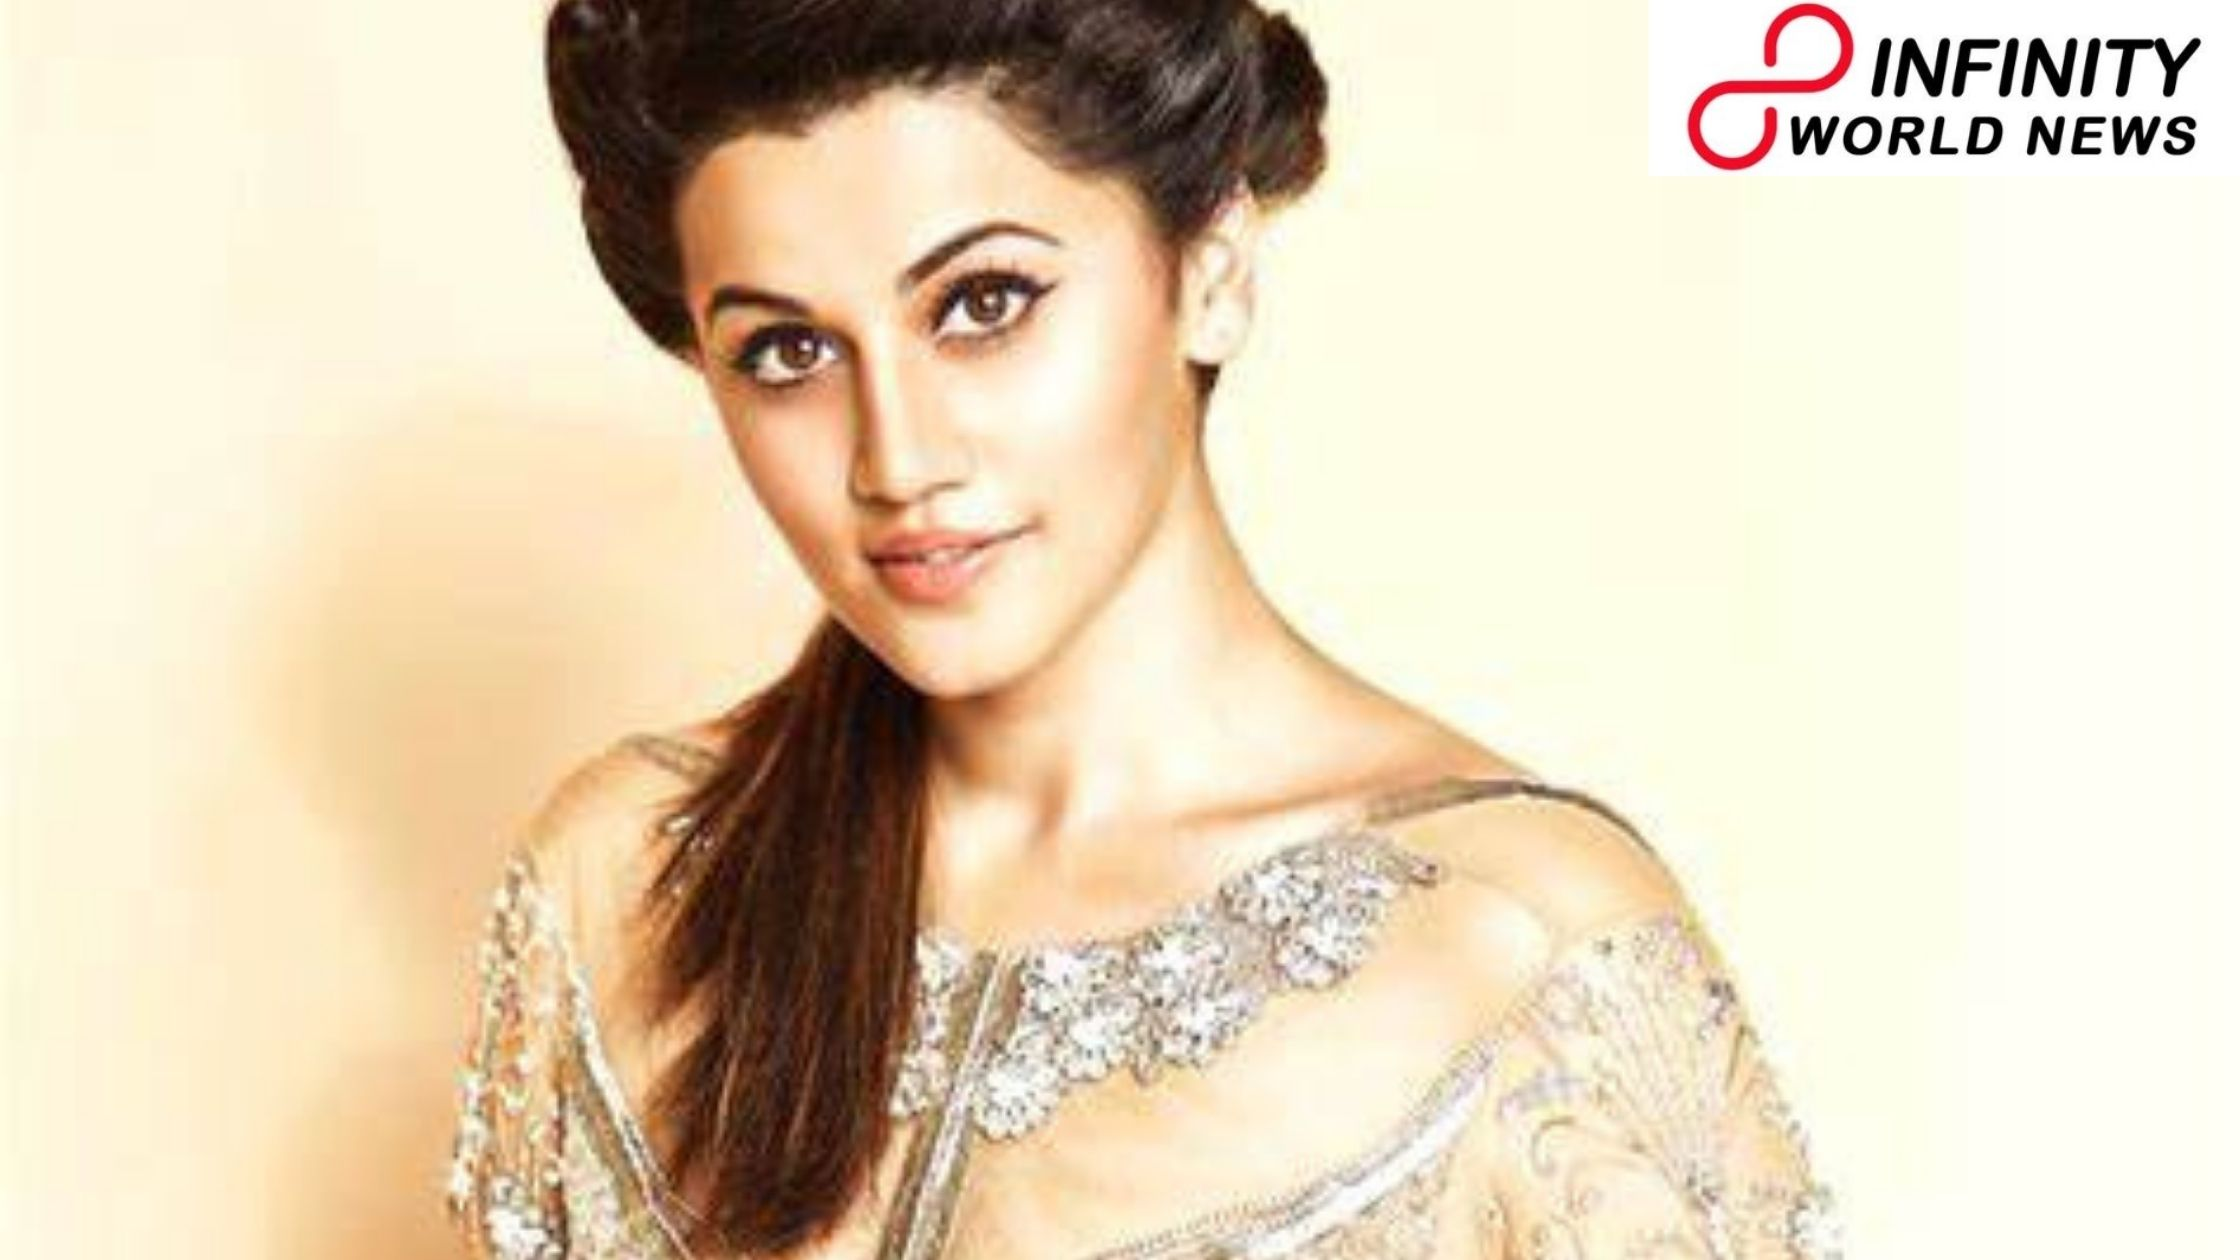 'Why have we acknowledged period rash as a lifestyle?' Taapsee Pannu's message on handling this 'pressing issue'